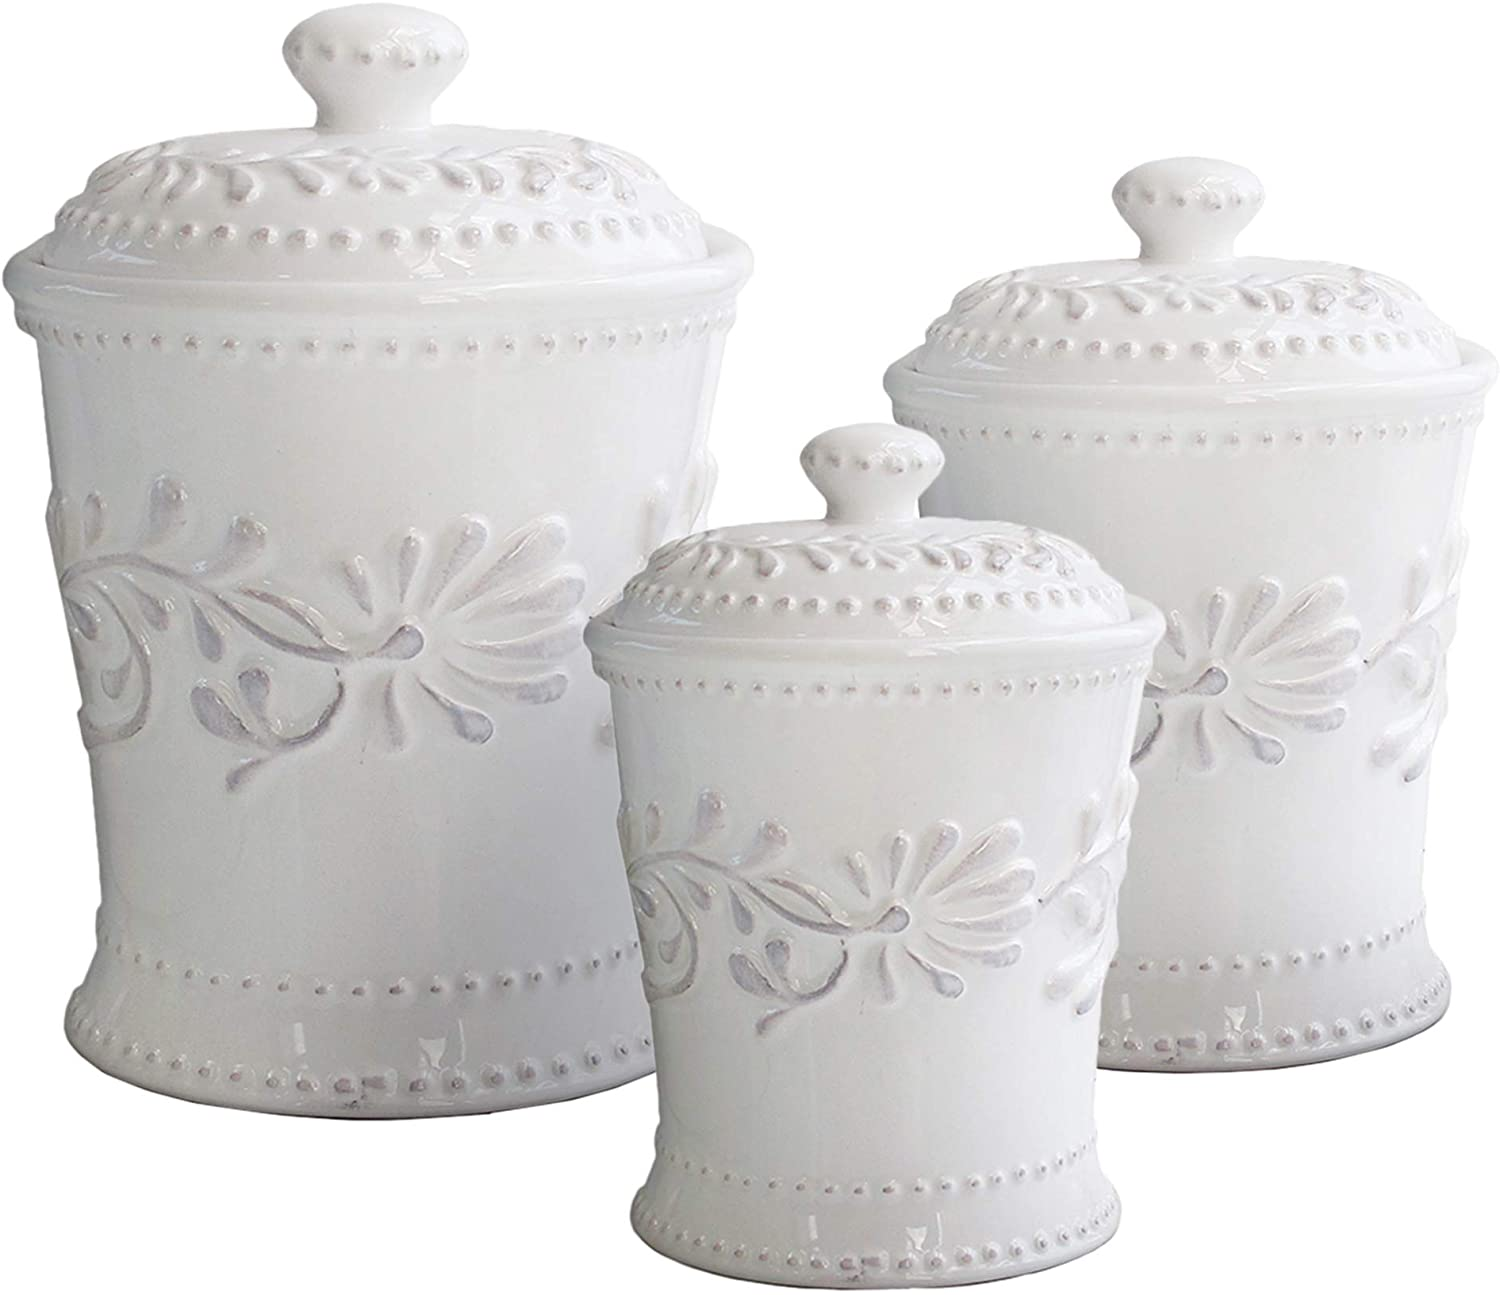 Amazon Com American Atelier Bianca Leaf Canister Set 3 Piece Ceramic Jars In 20oz 48oz And 80oz Chic Design With Lids For Cookies Candy Coffee Flour Sugar Rice Pasta Cereal More Kitchen